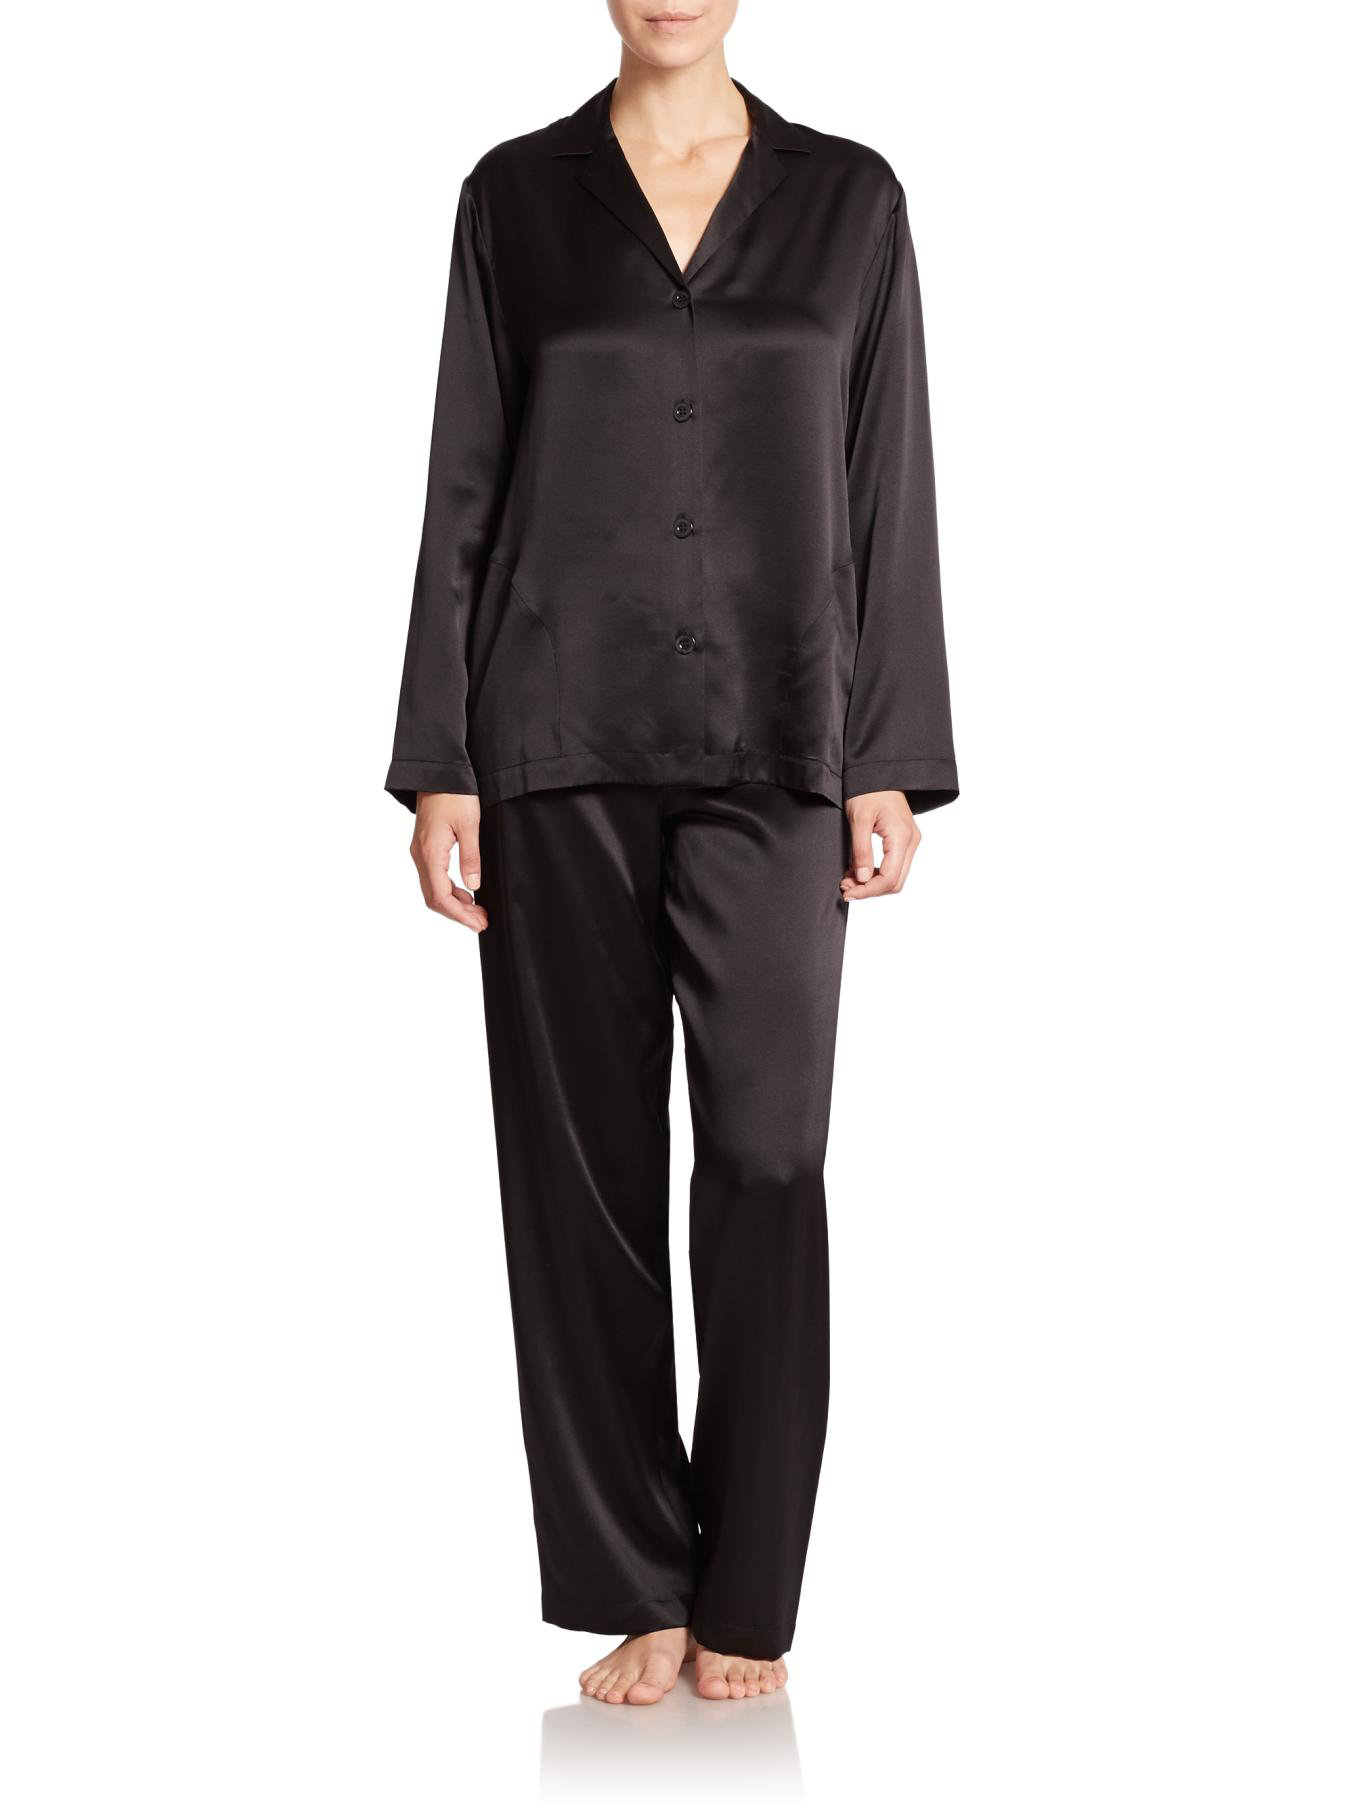 Black Silk Pajamas: La Perla Silk Pajamas In Black